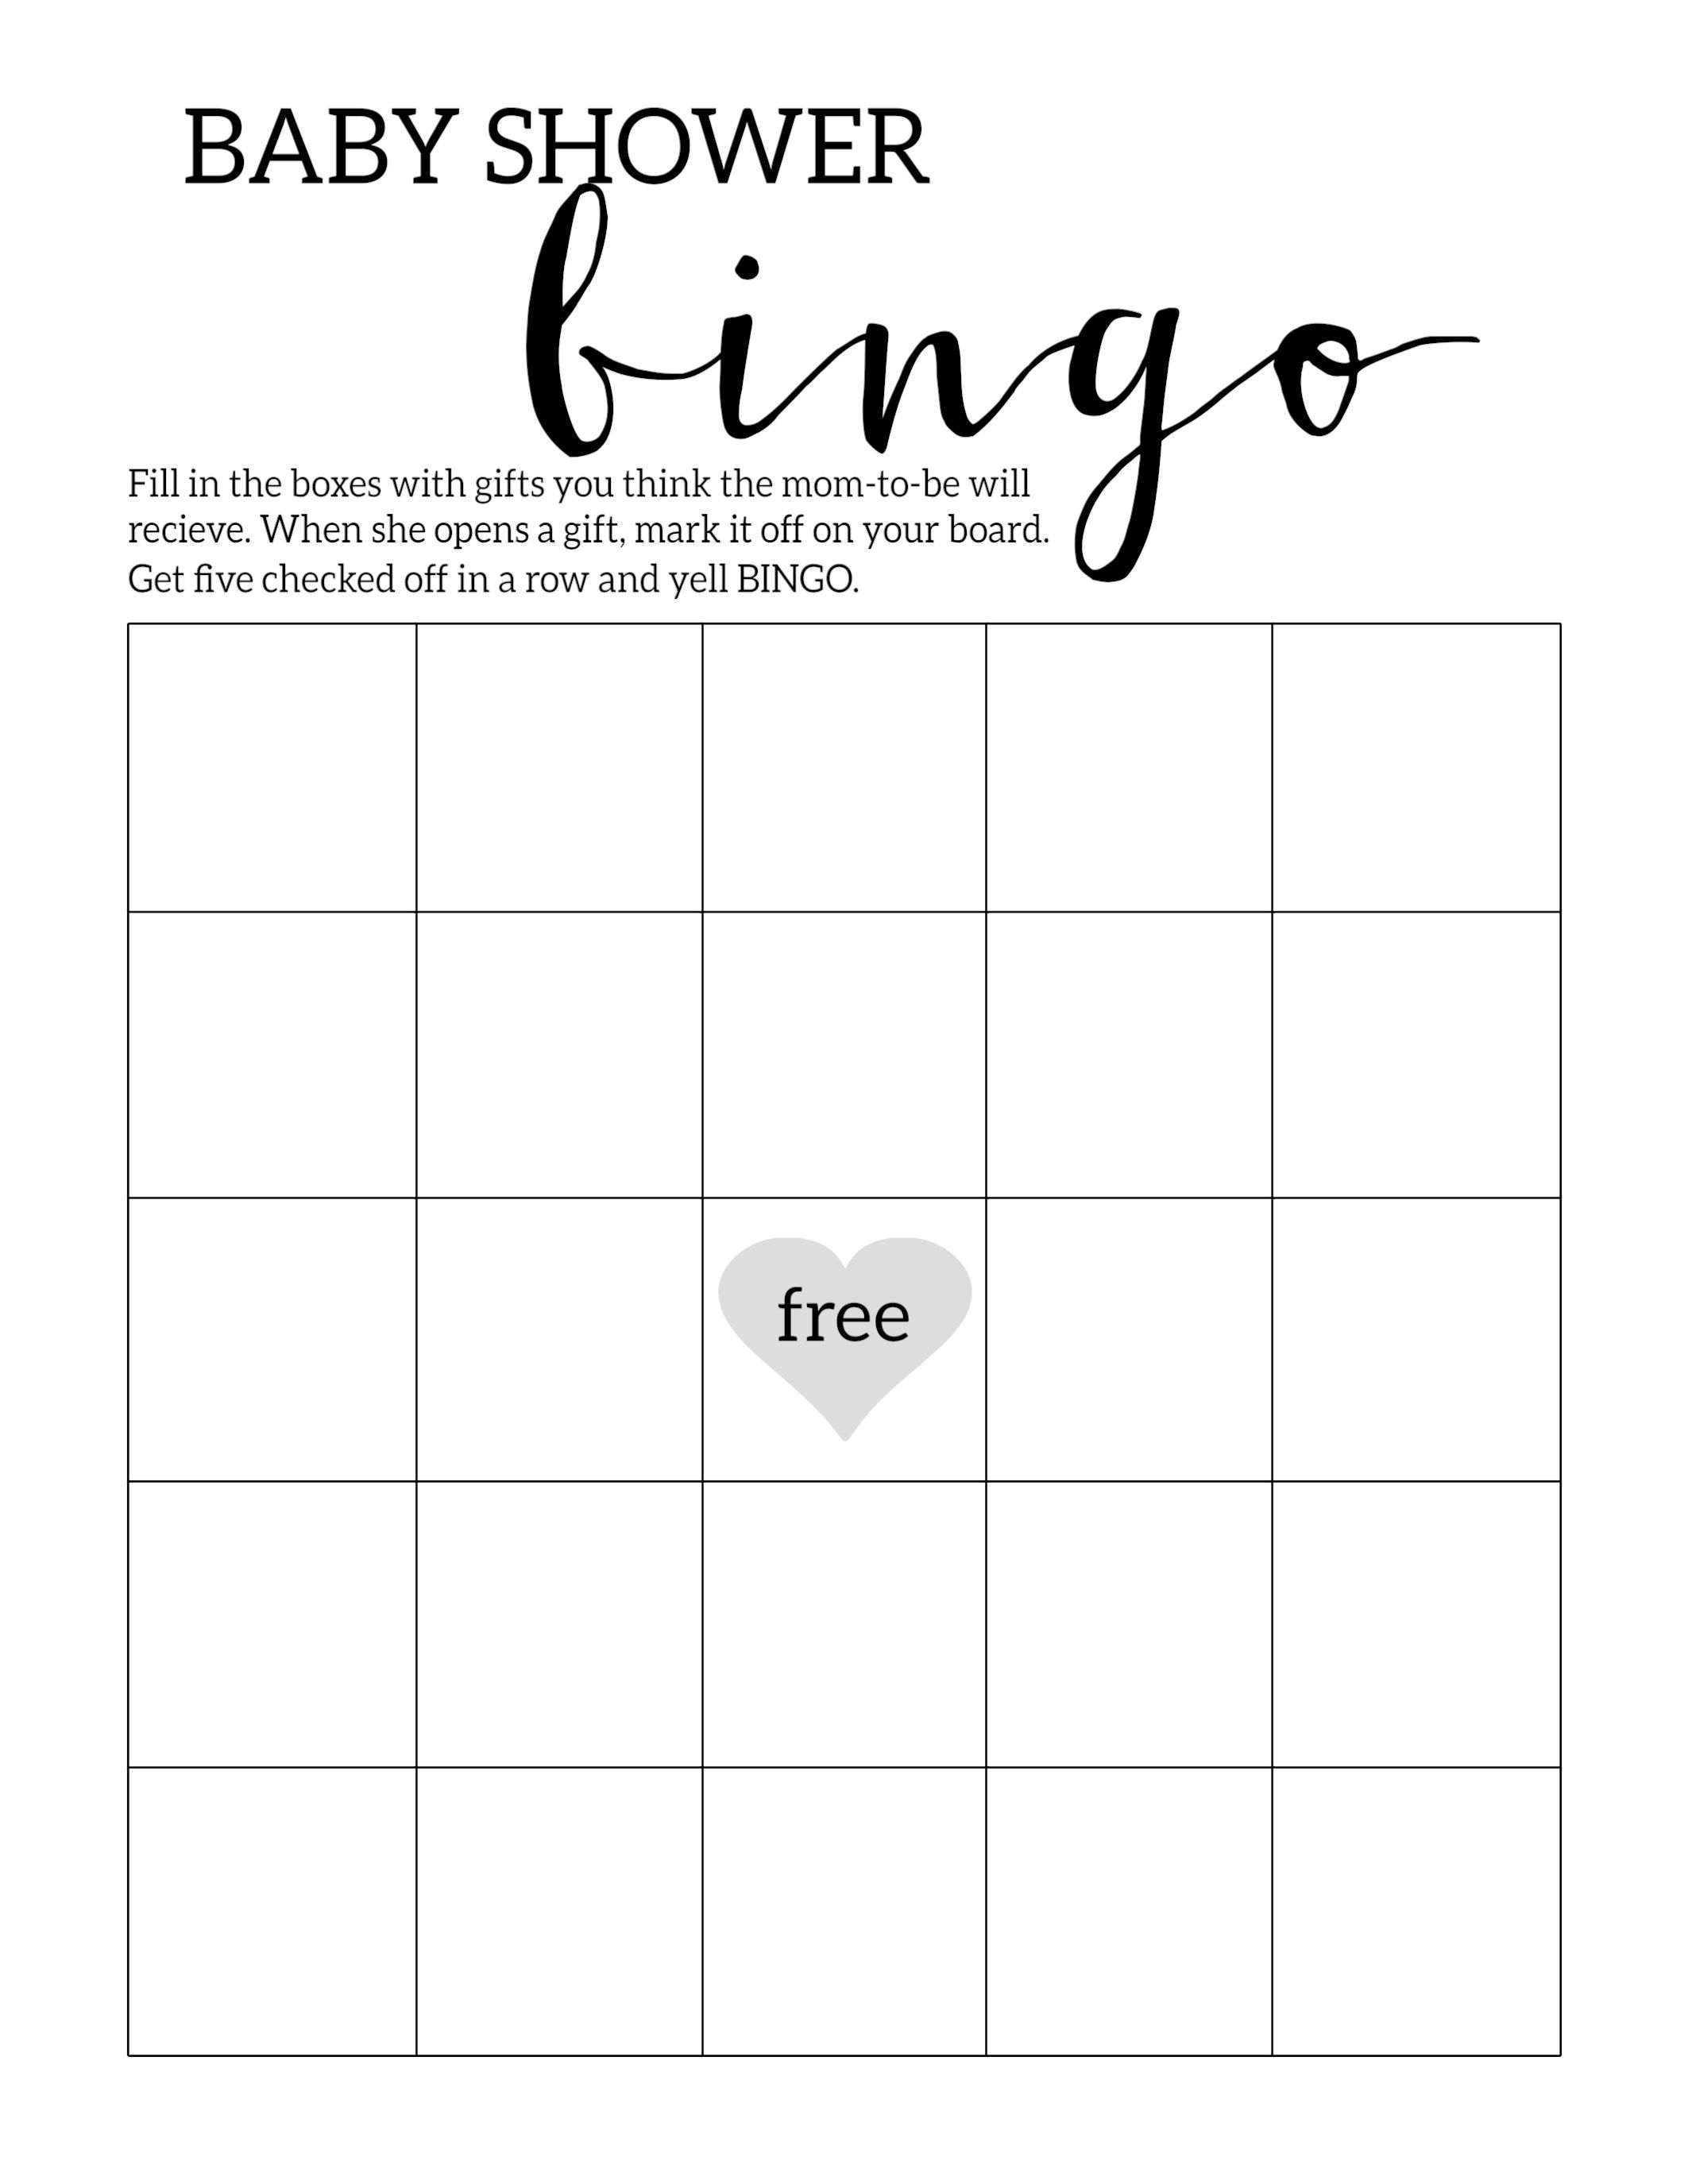 Baby shower bingo printable cards template baby shower bingo baby